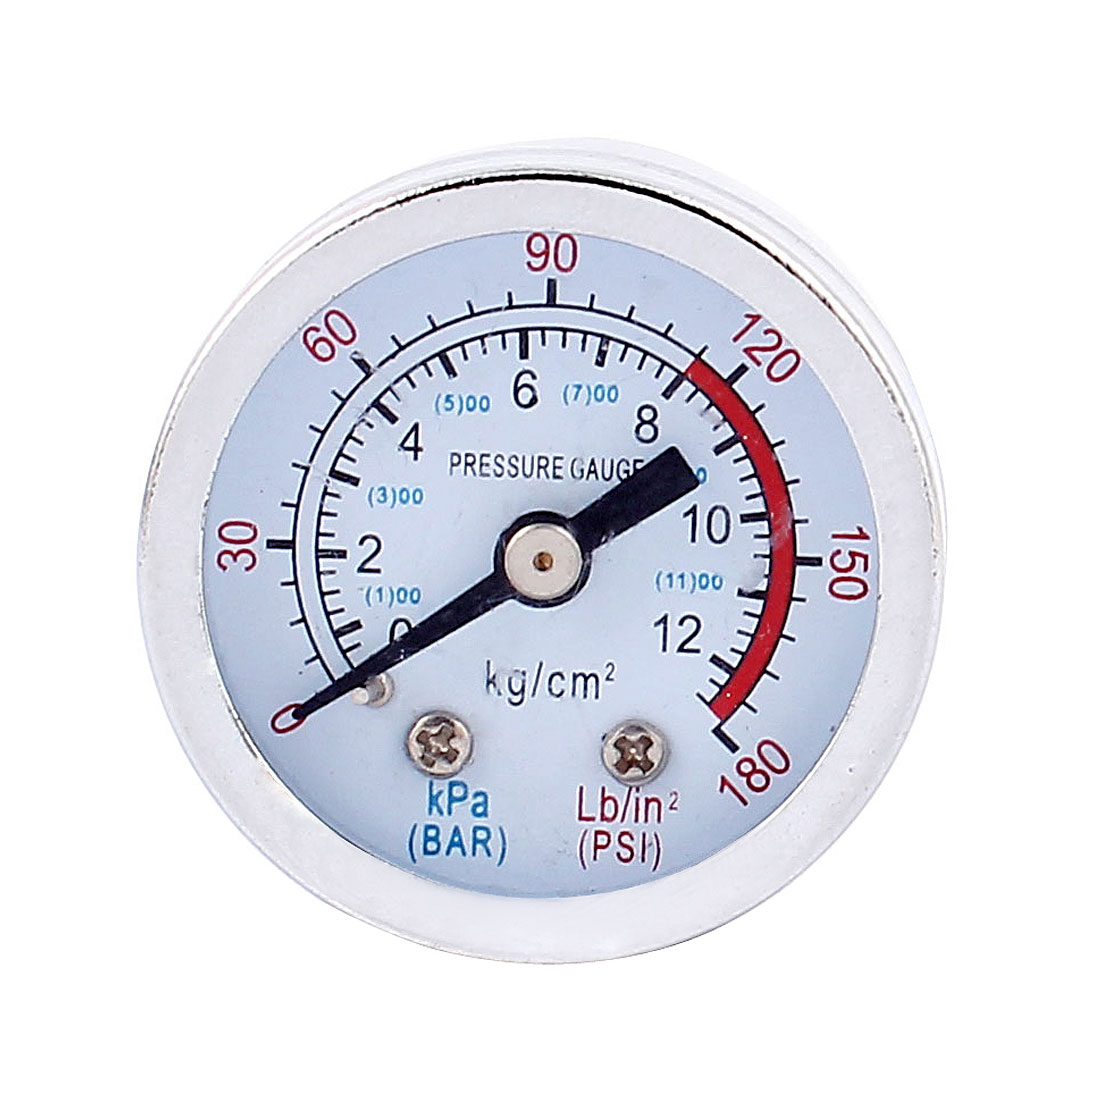 0-180PSI 0-12 kg/cm2 9.5mm 1/8BSP Thread Dia Dial Air Pressure Gauge